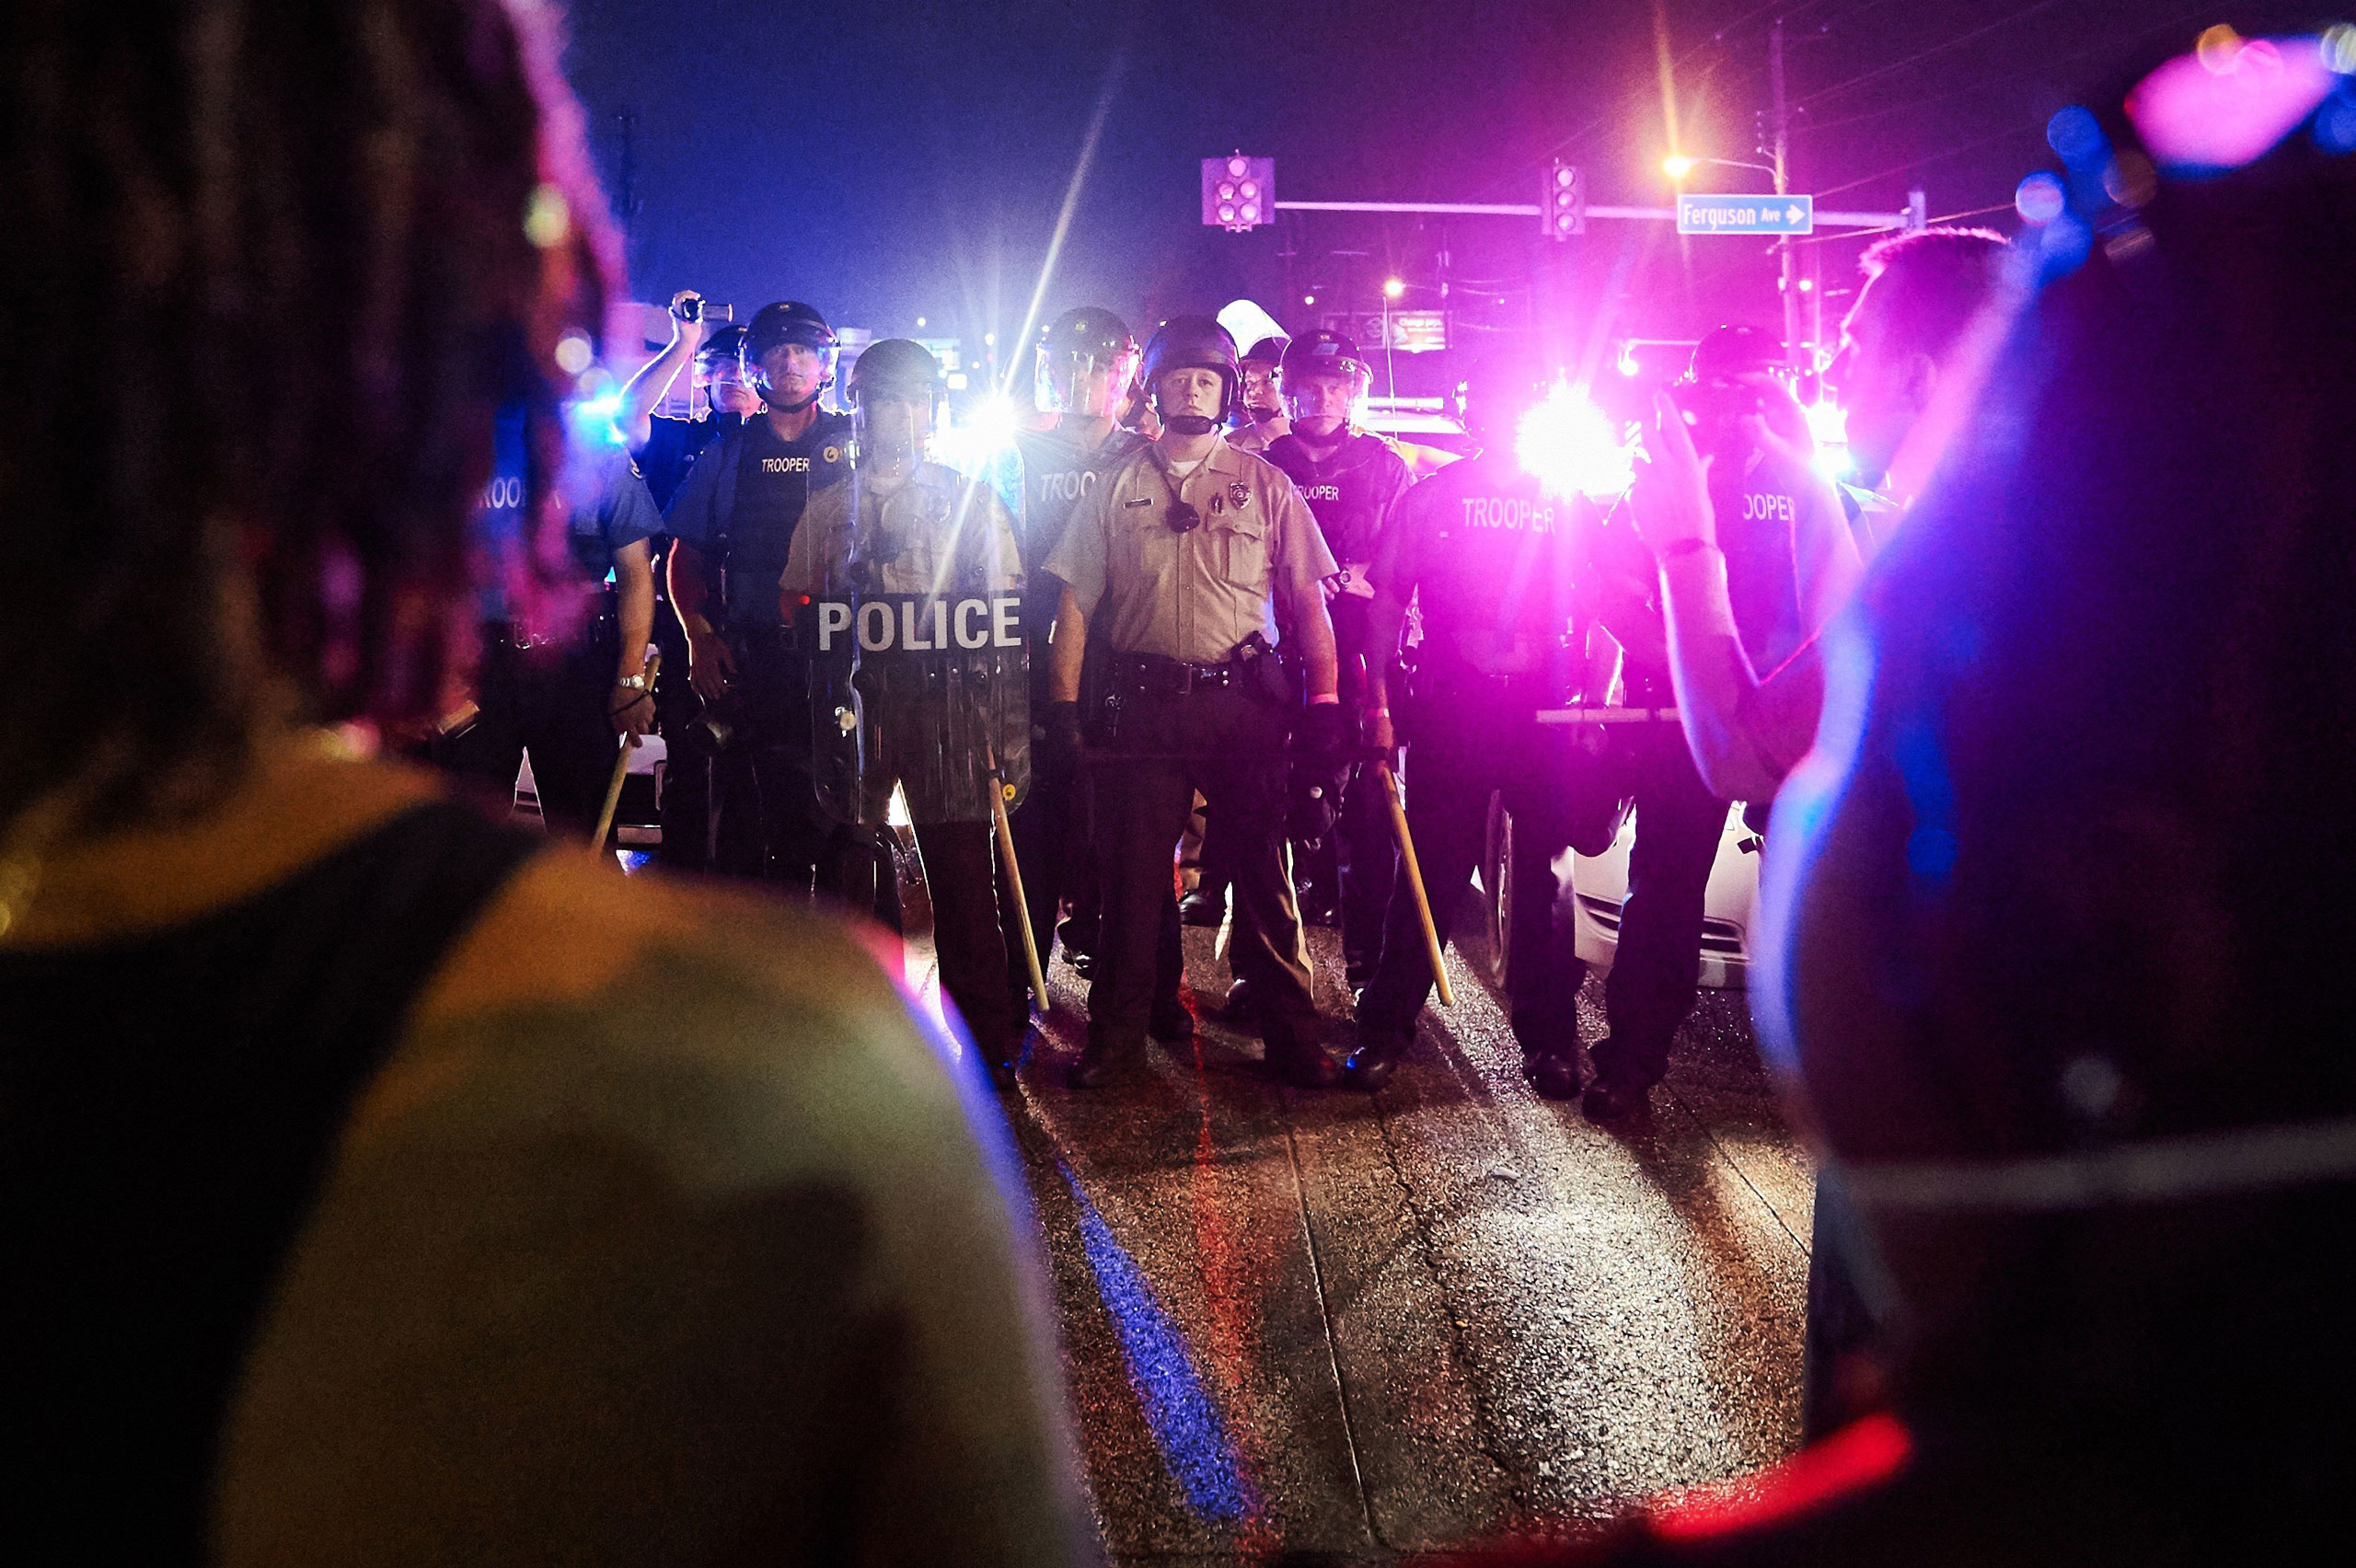 St. Louis County Police and Missouri State Highway Patrol troopers stand guard as protesters march on West Florissant Avenue in Ferguson, Mo., on August 9, 2015.